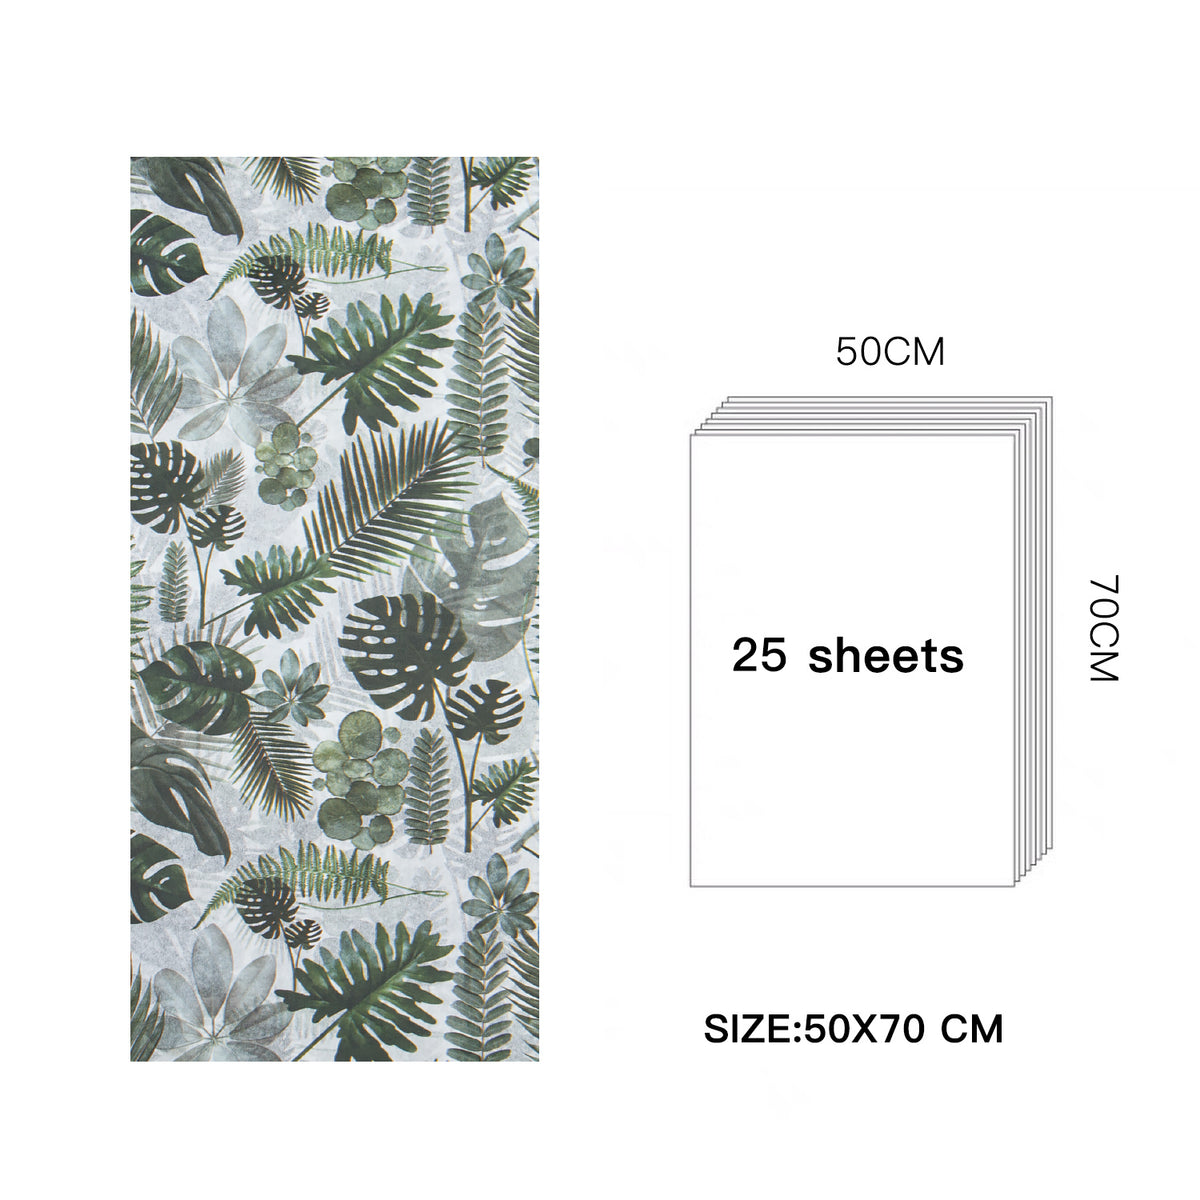 Wrapaholic-Tropical-Leaf-Printed-Tissue-Paper-2